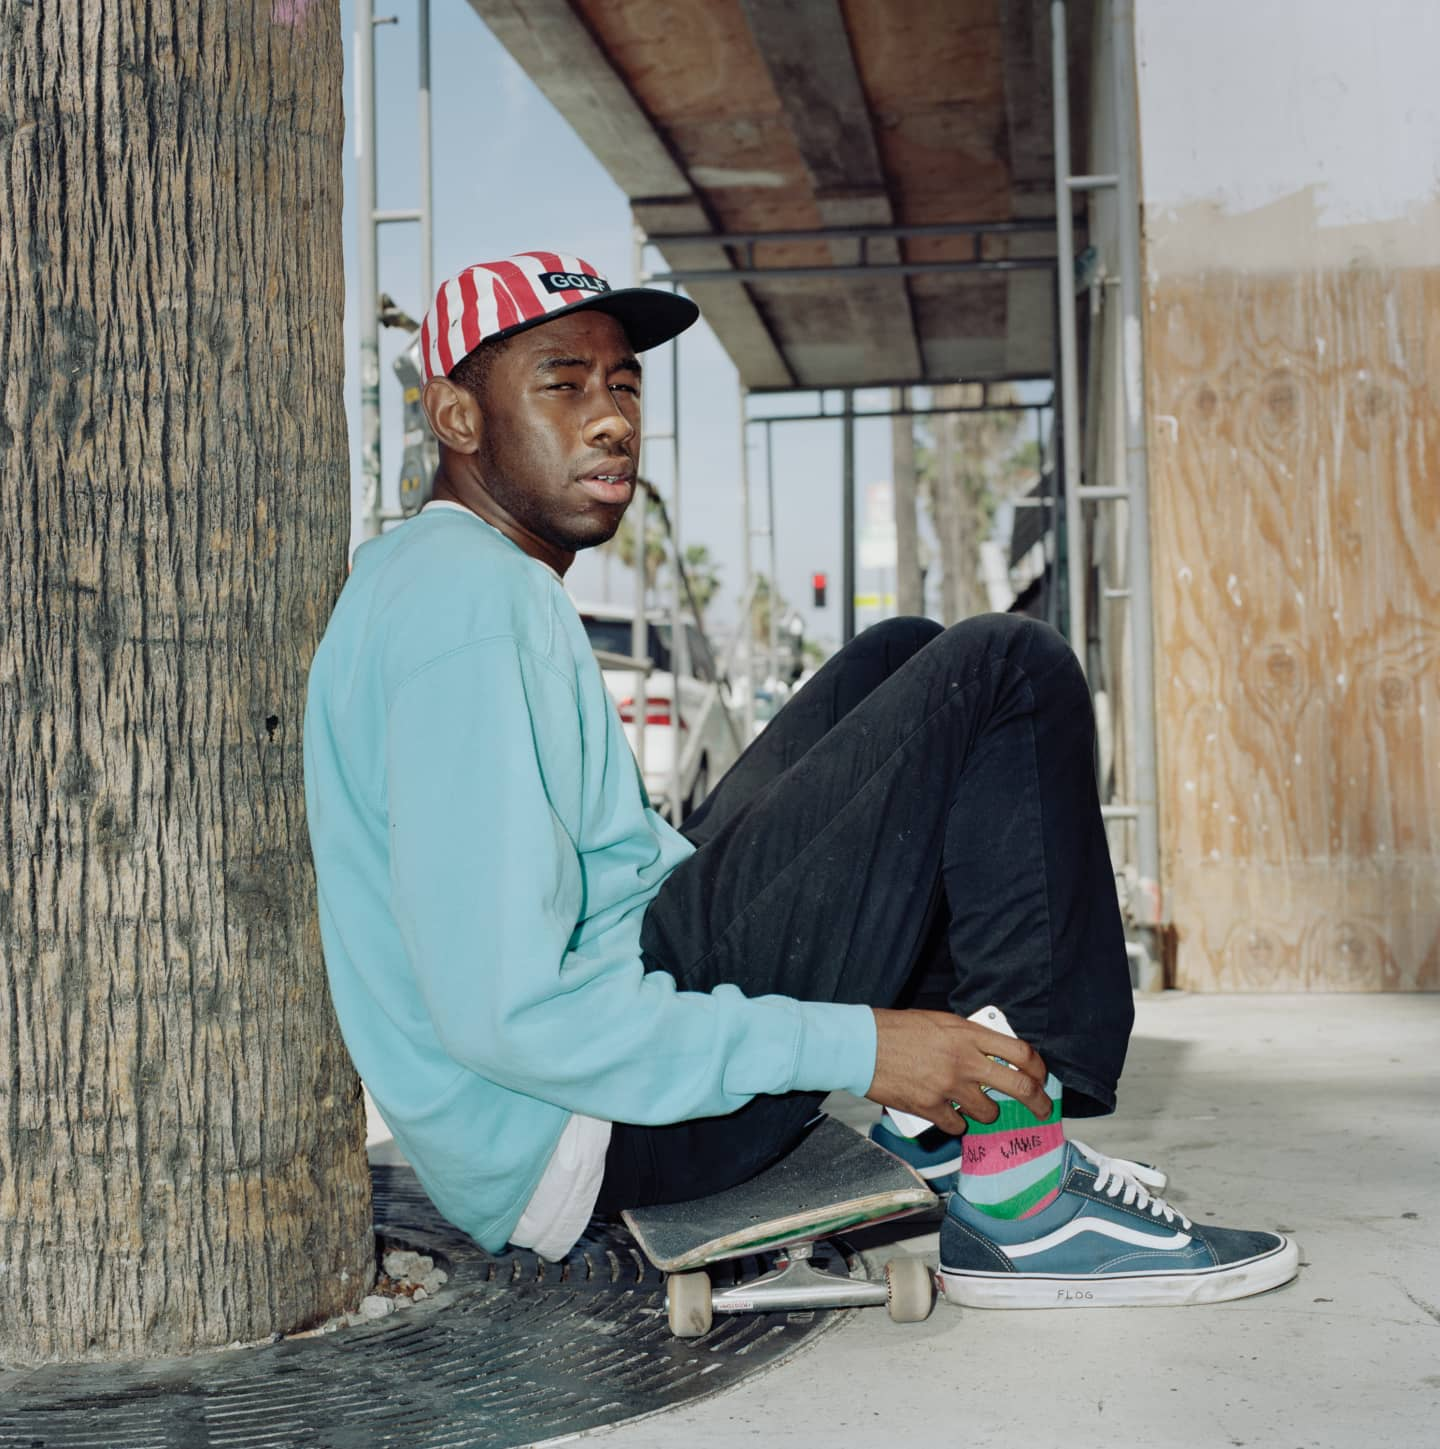 06beeb61 Recently, Tyler has begun to take this glamorized imagery, and the  lifestyle it represents, to task. On the collection of songs he's currently  recording, ...